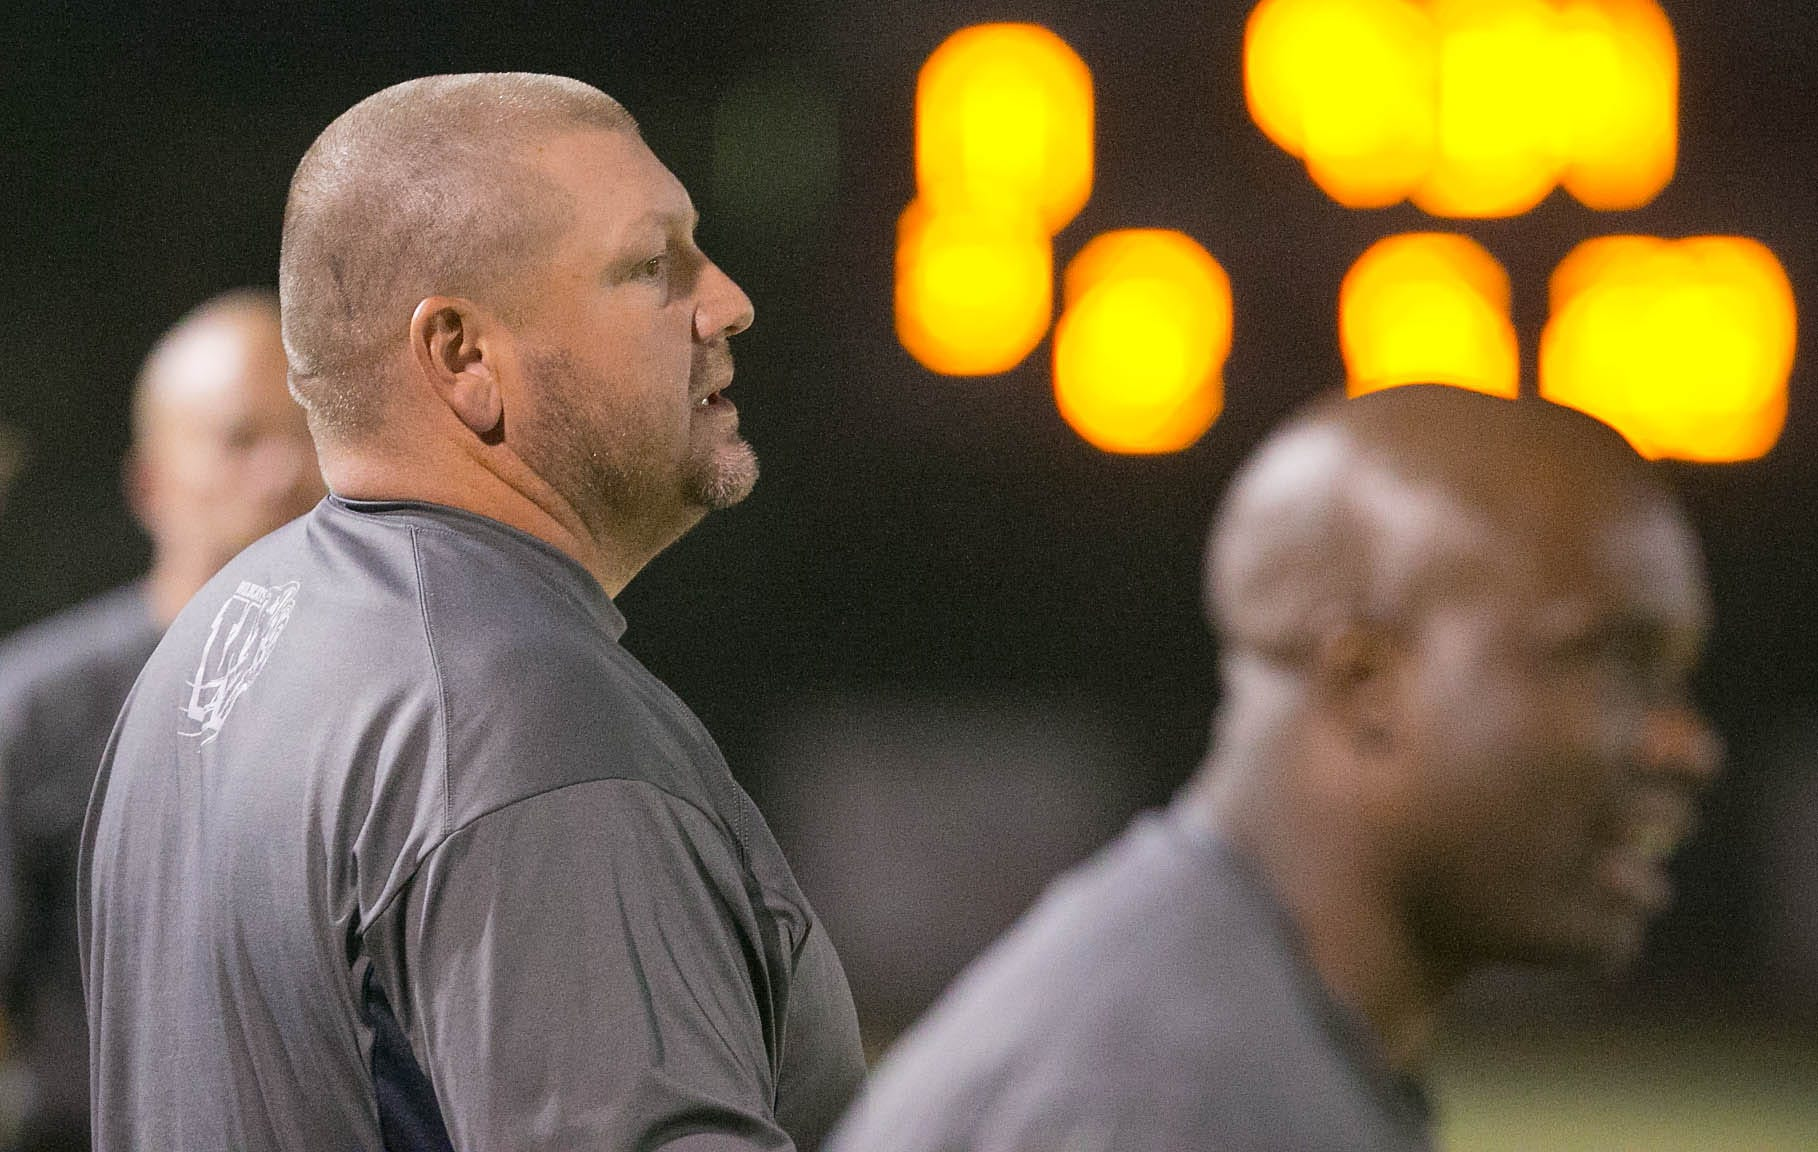 Michael Hudnutt moves from Surprise Willow Canyon to Cave Creek Cactus Shadows this season.